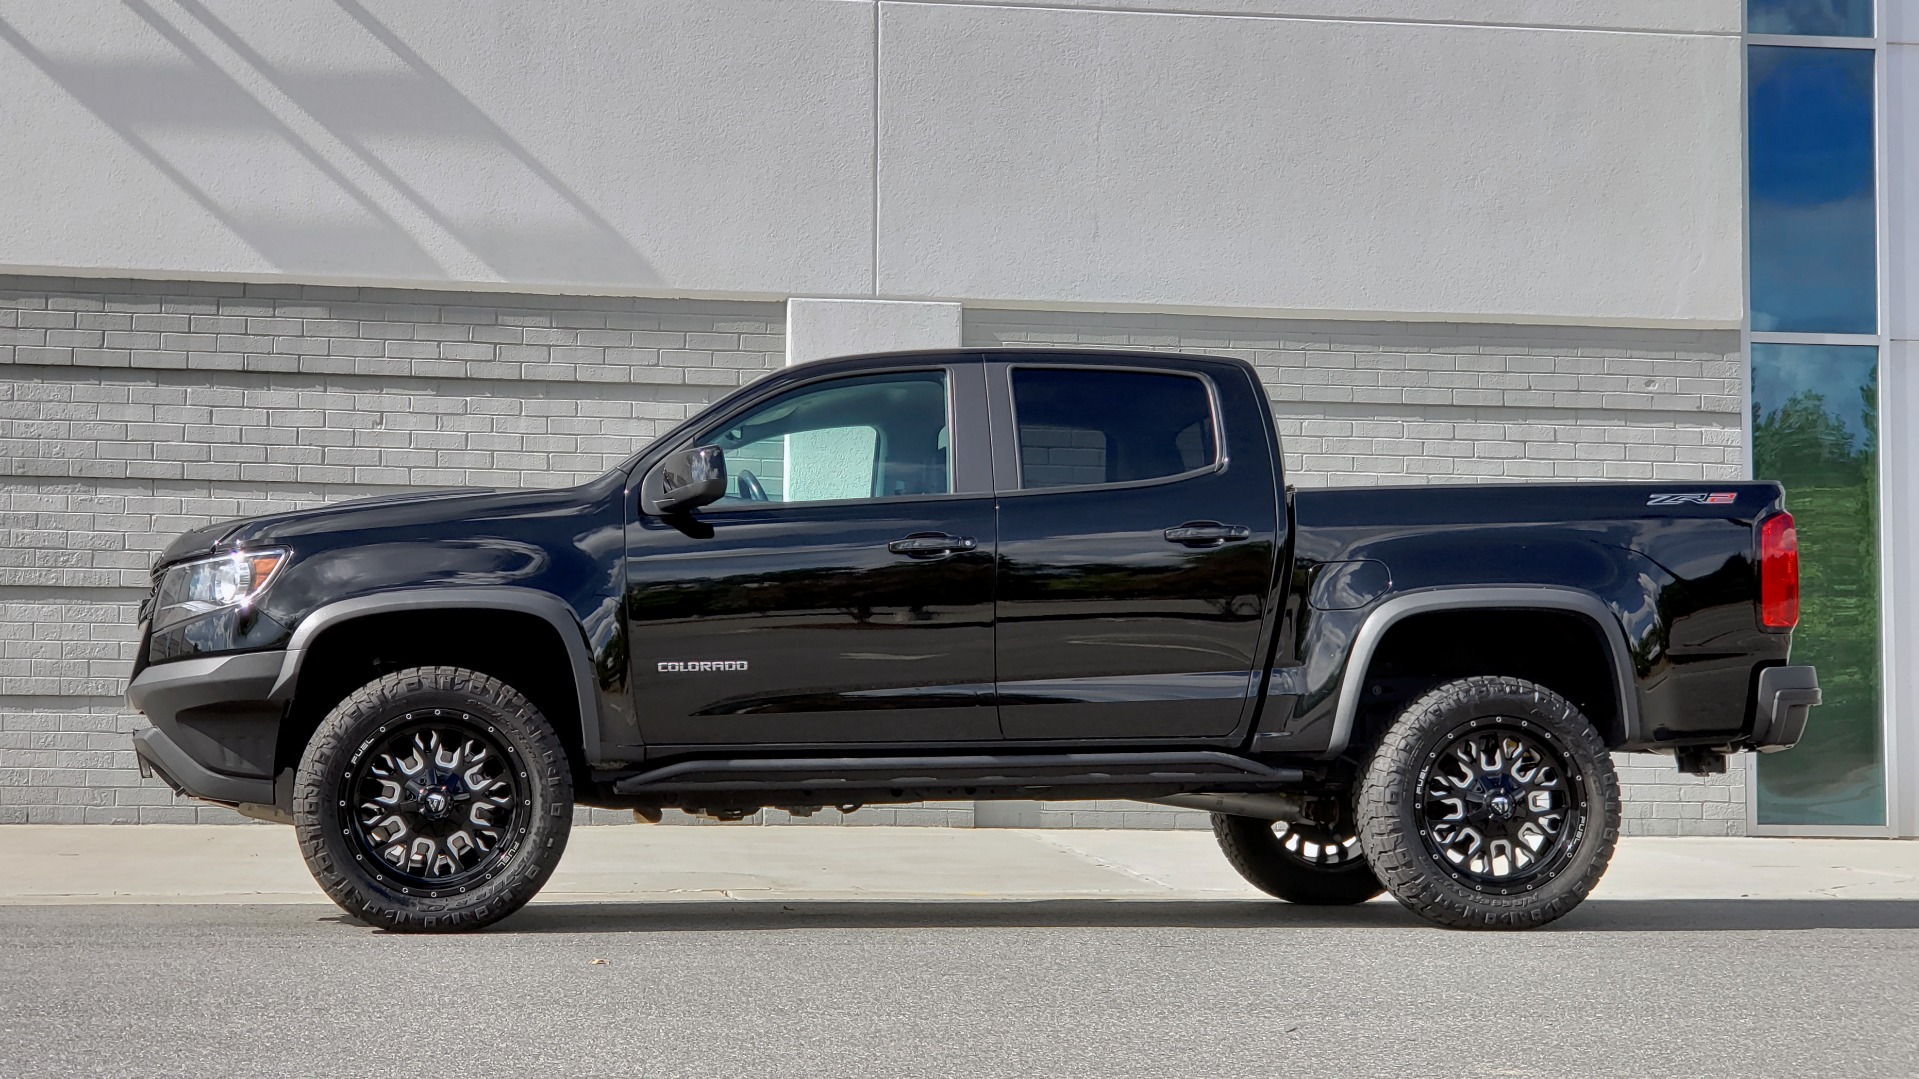 Used 2019 Chevrolet COLORADO 4WD ZR2 / 3.6L V6 / 8-SPD AUTO / CREWCAB / LEATHER / BOSE / REARVIEW for sale $41,995 at Formula Imports in Charlotte NC 28227 4